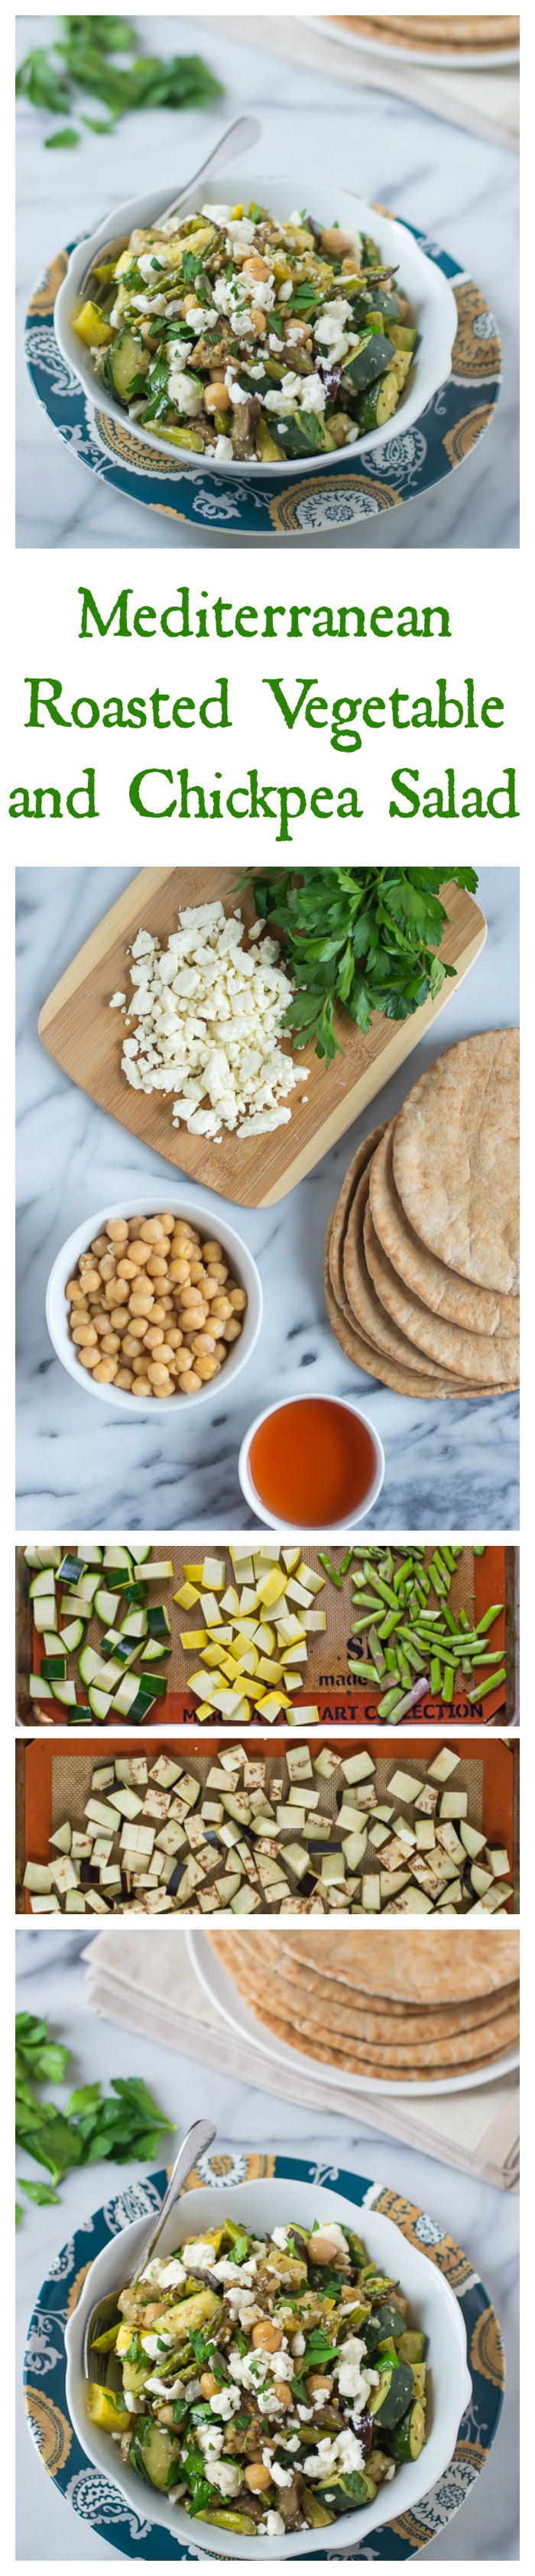 Mediterranean Roasted Vegetable and Chickpea Salad // Well-Plated